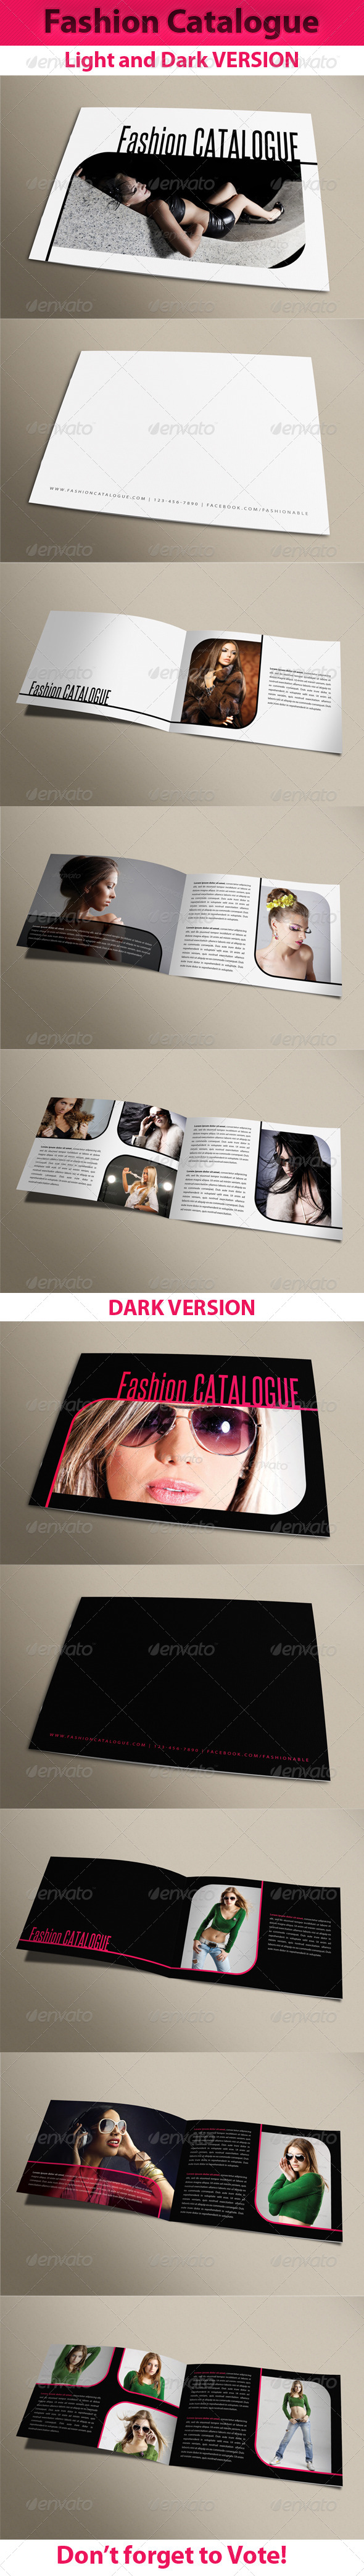 fashion-catalog1